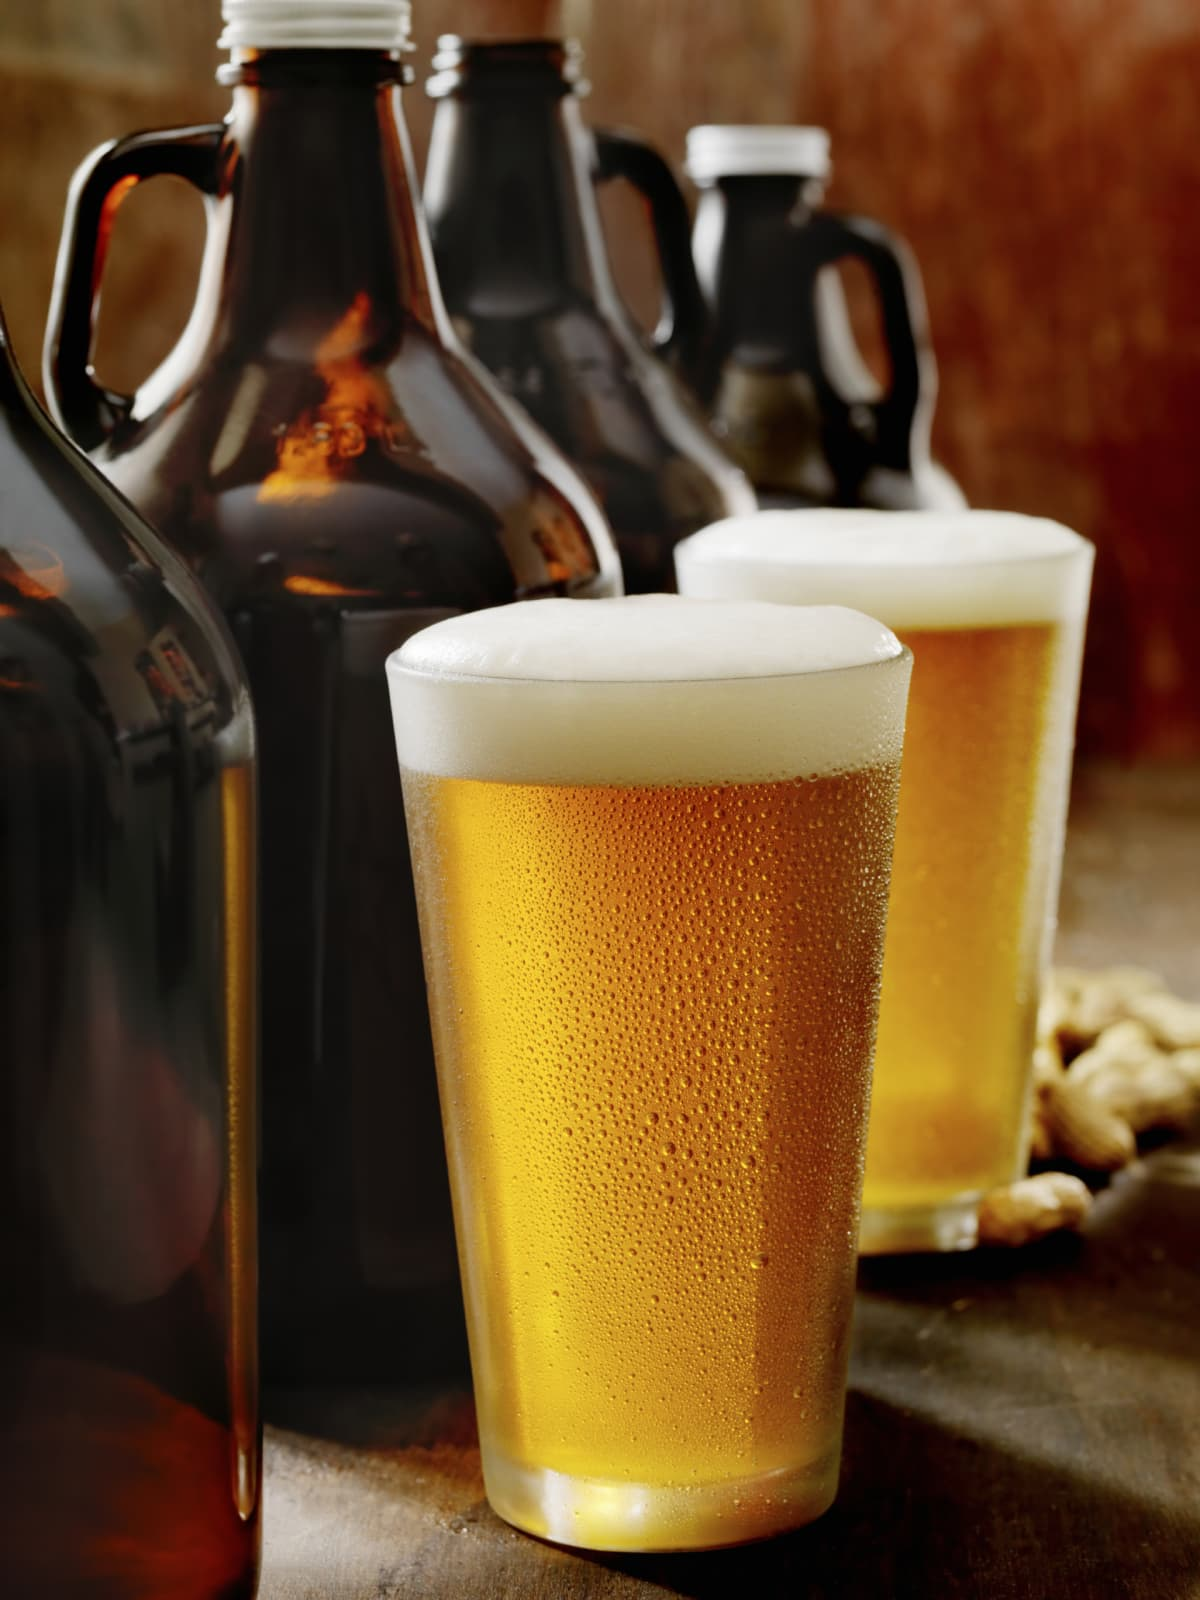 Glass of beer and growlers